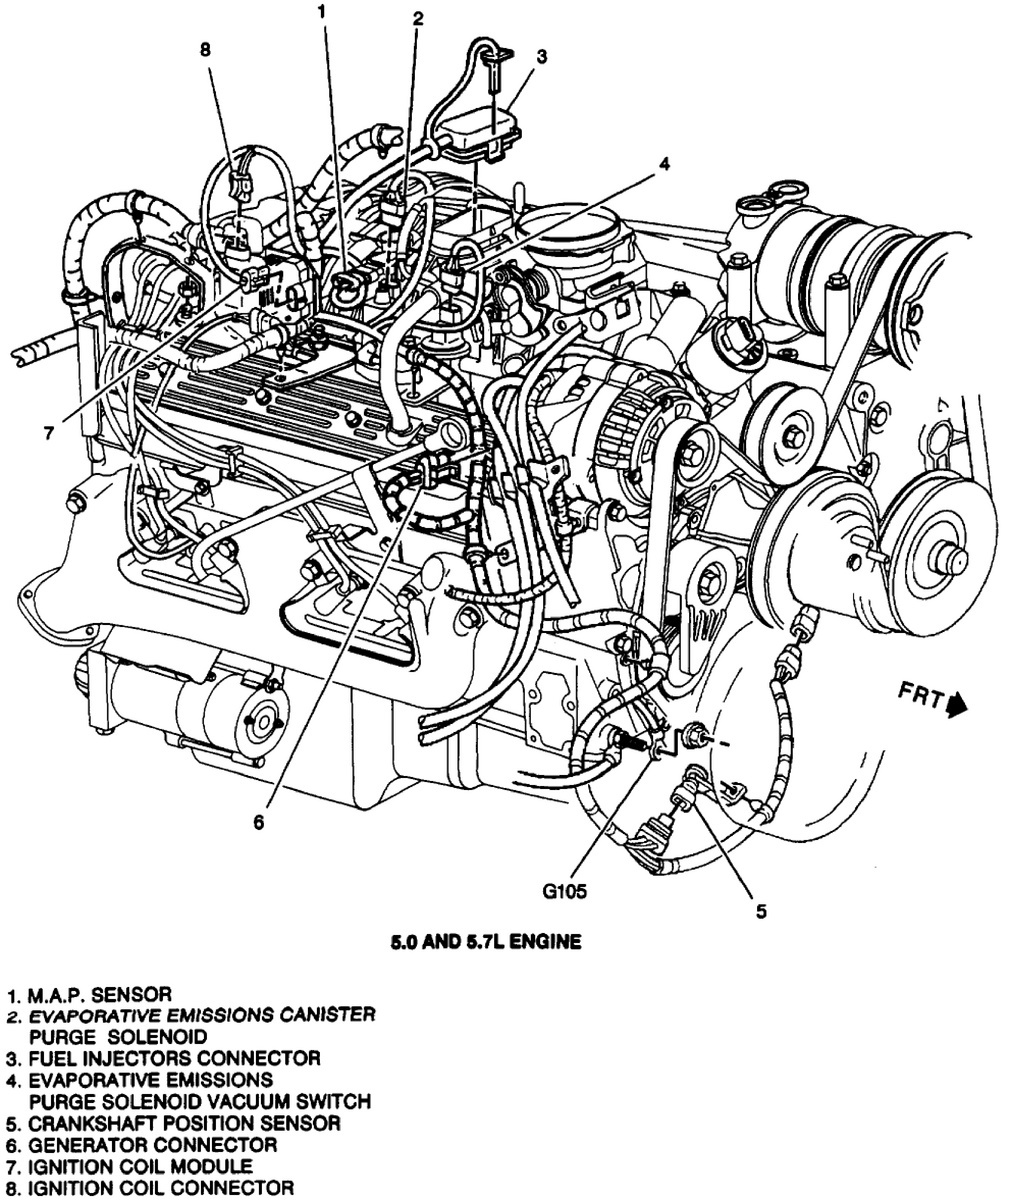 Astonishing Ford Engine Parts Diagram Basic Electronics Wiring Diagram Wiring Cloud Nuvitbieswglorg